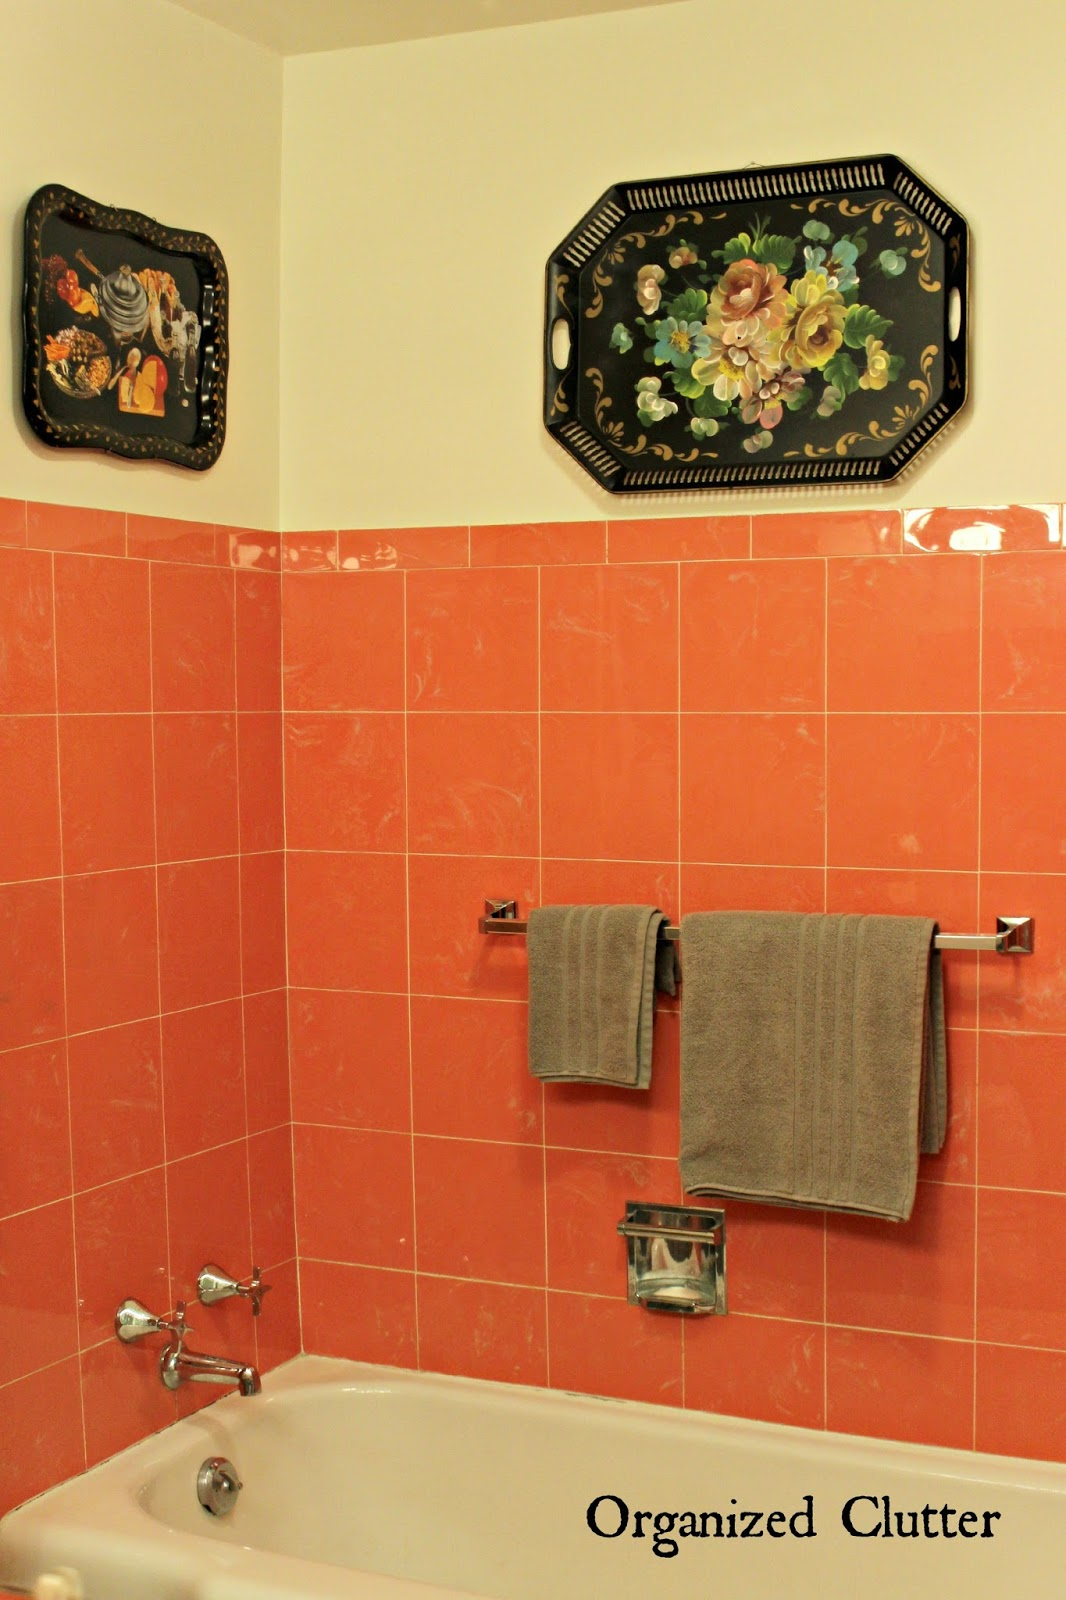 Tole Trays in a Vintage Bathroom www.organizedclutterqueen.blogspot.com